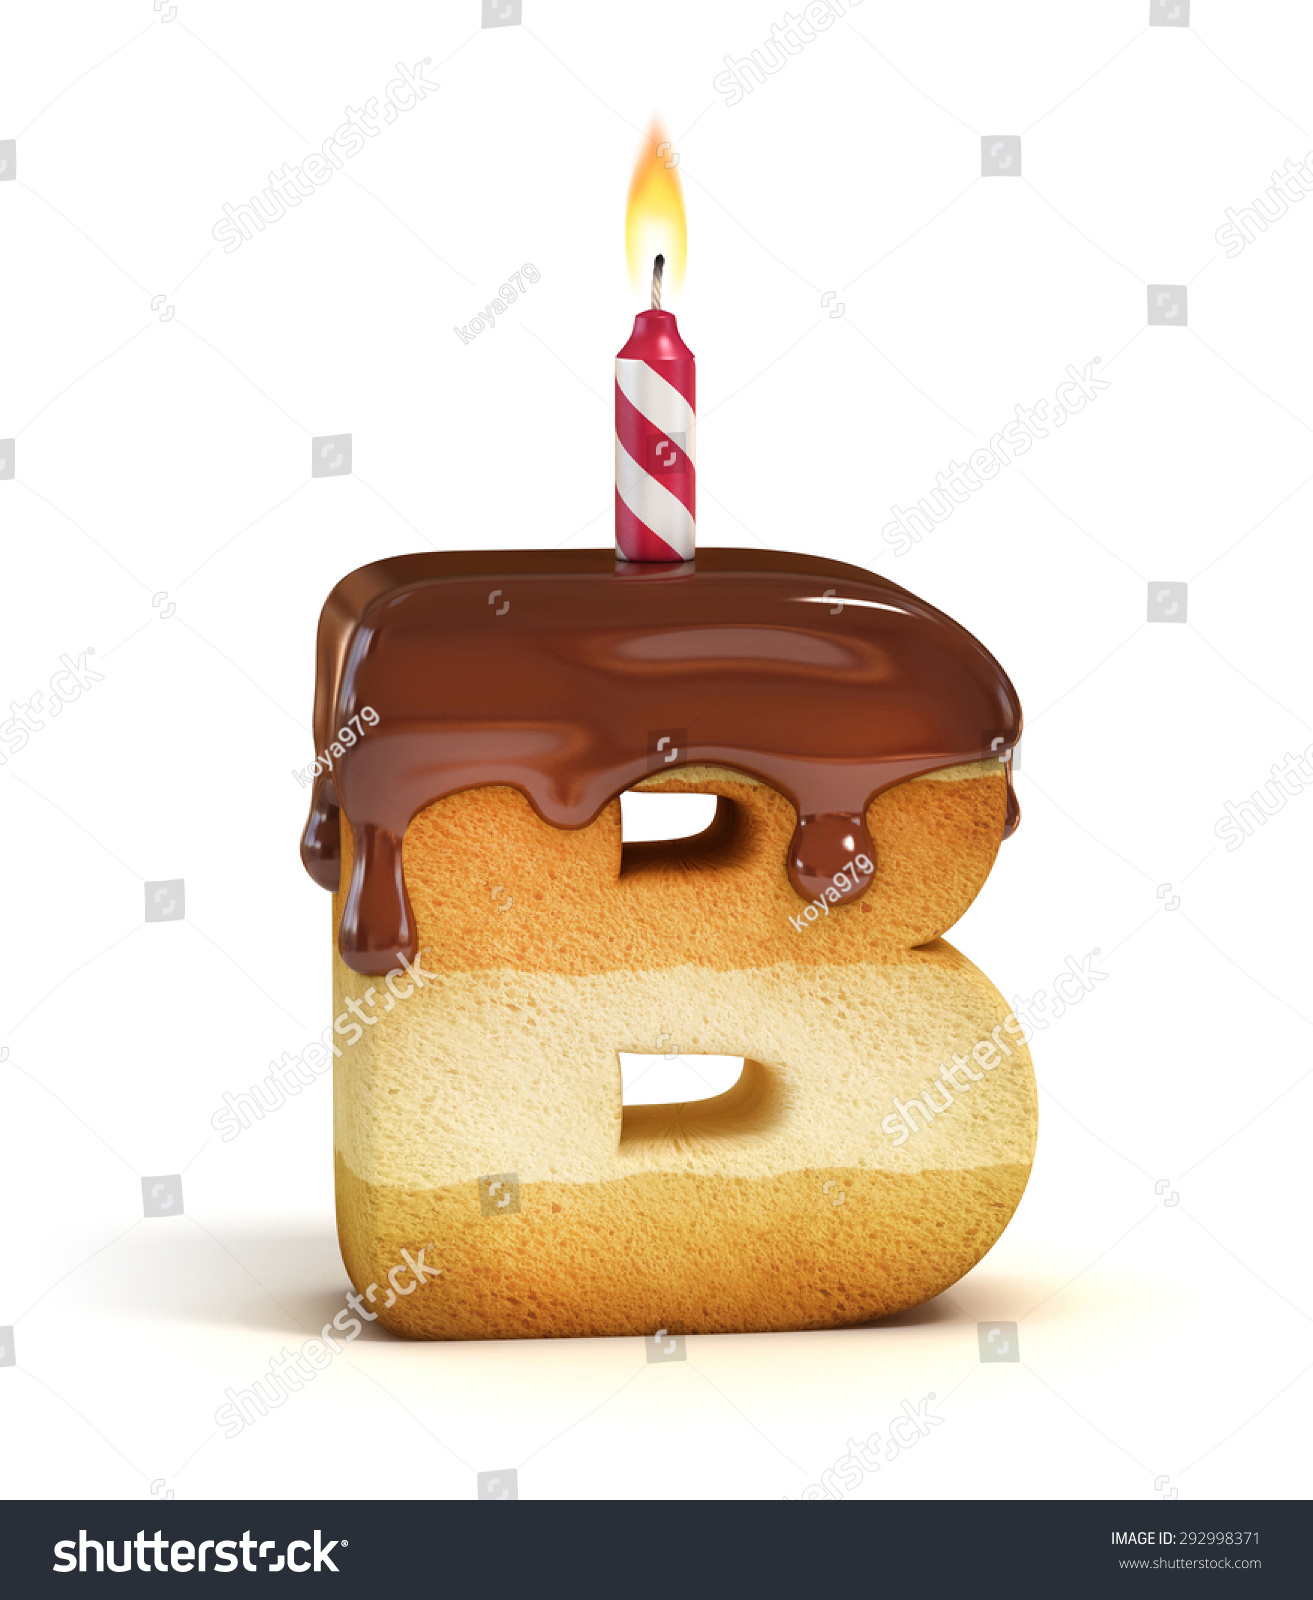 Cake Images With Letter S : Birthday Cake Font Letter B Stock Photo 292998371 ...